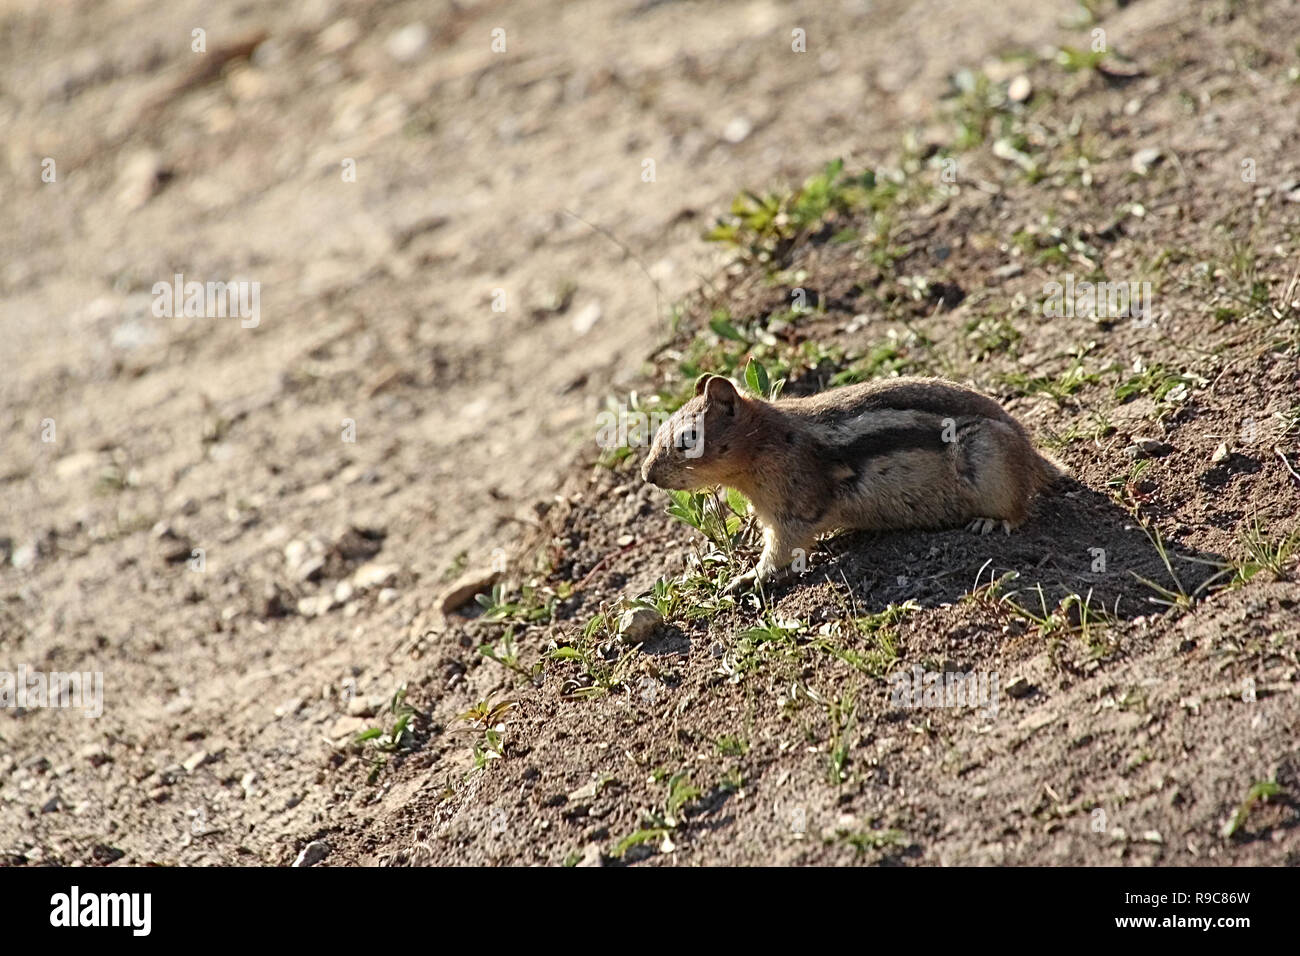 The red-tailed chipmunk (Neotamias ruficaudus) is a species of rodent in the family Sciuridae. - Stock Image